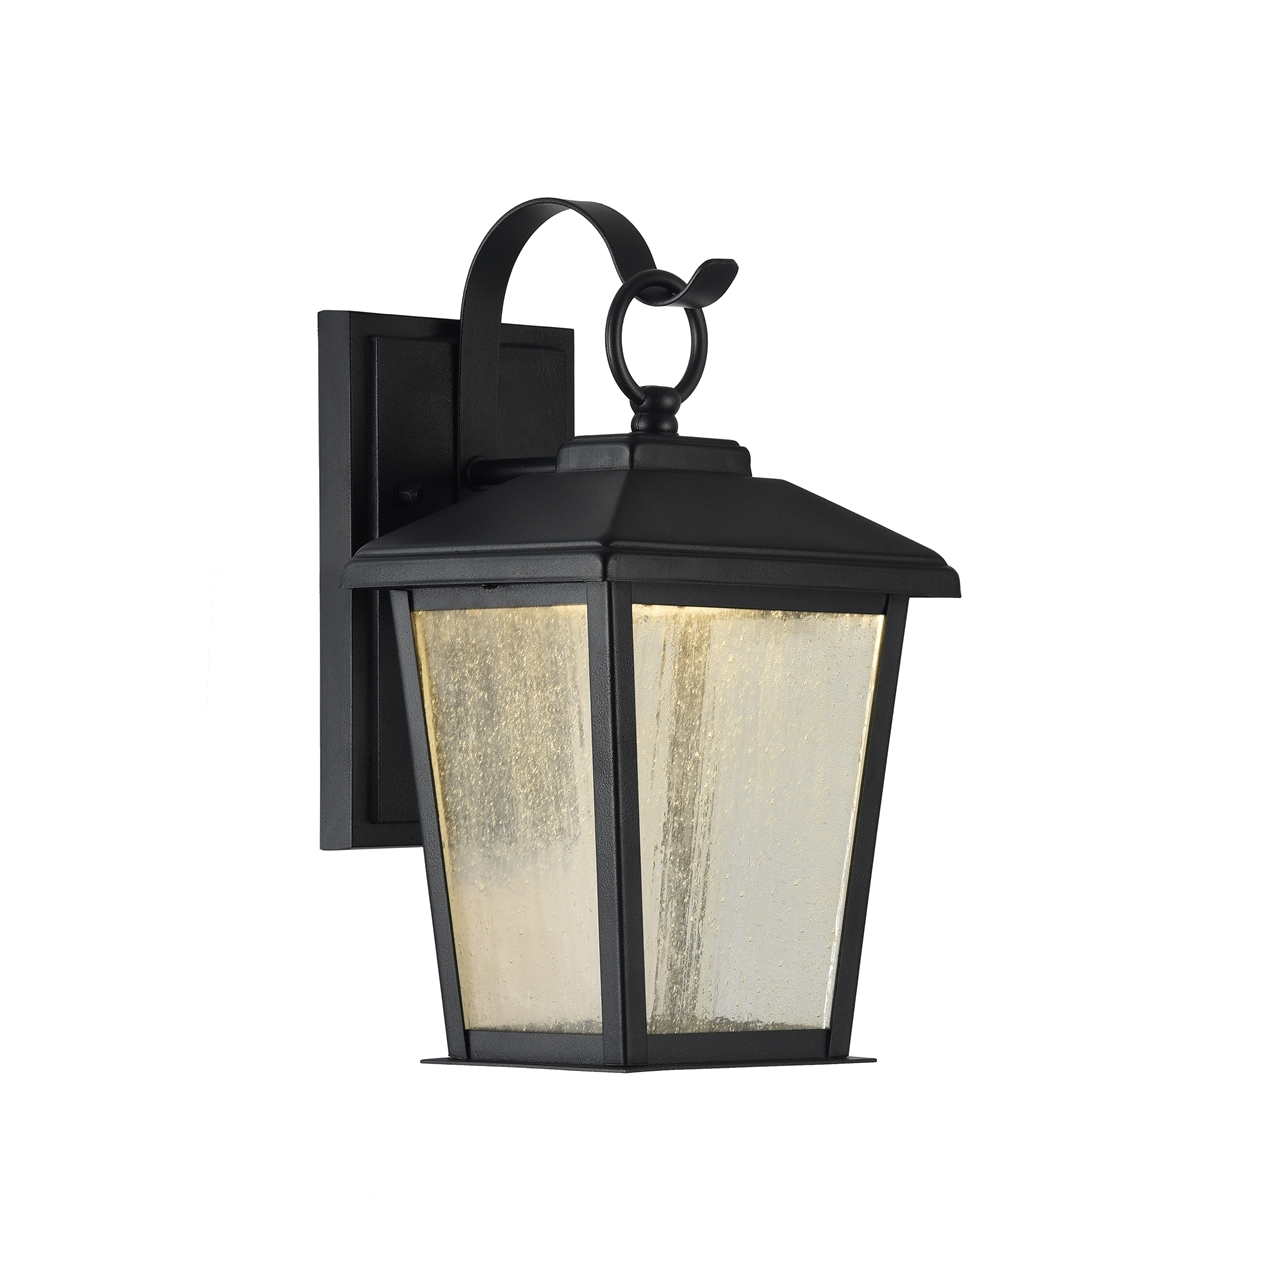 Chloe Lighting Inc Chloe Lighting Kirton Transitional